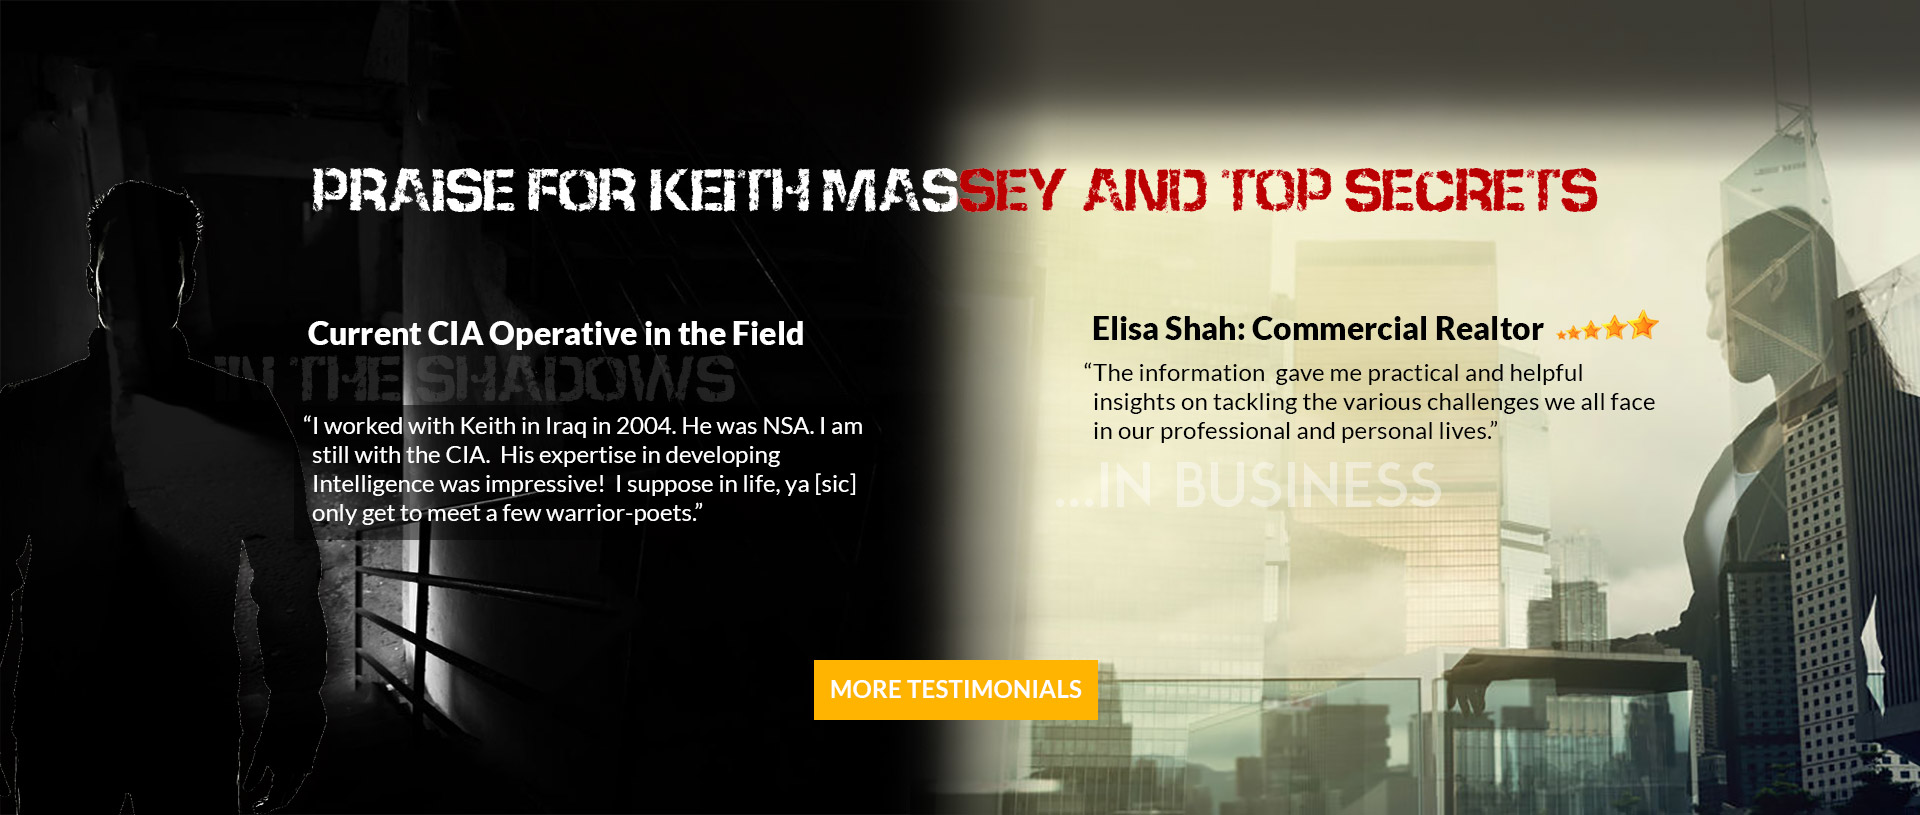 What are people saying about keith Massey and Top Secrets